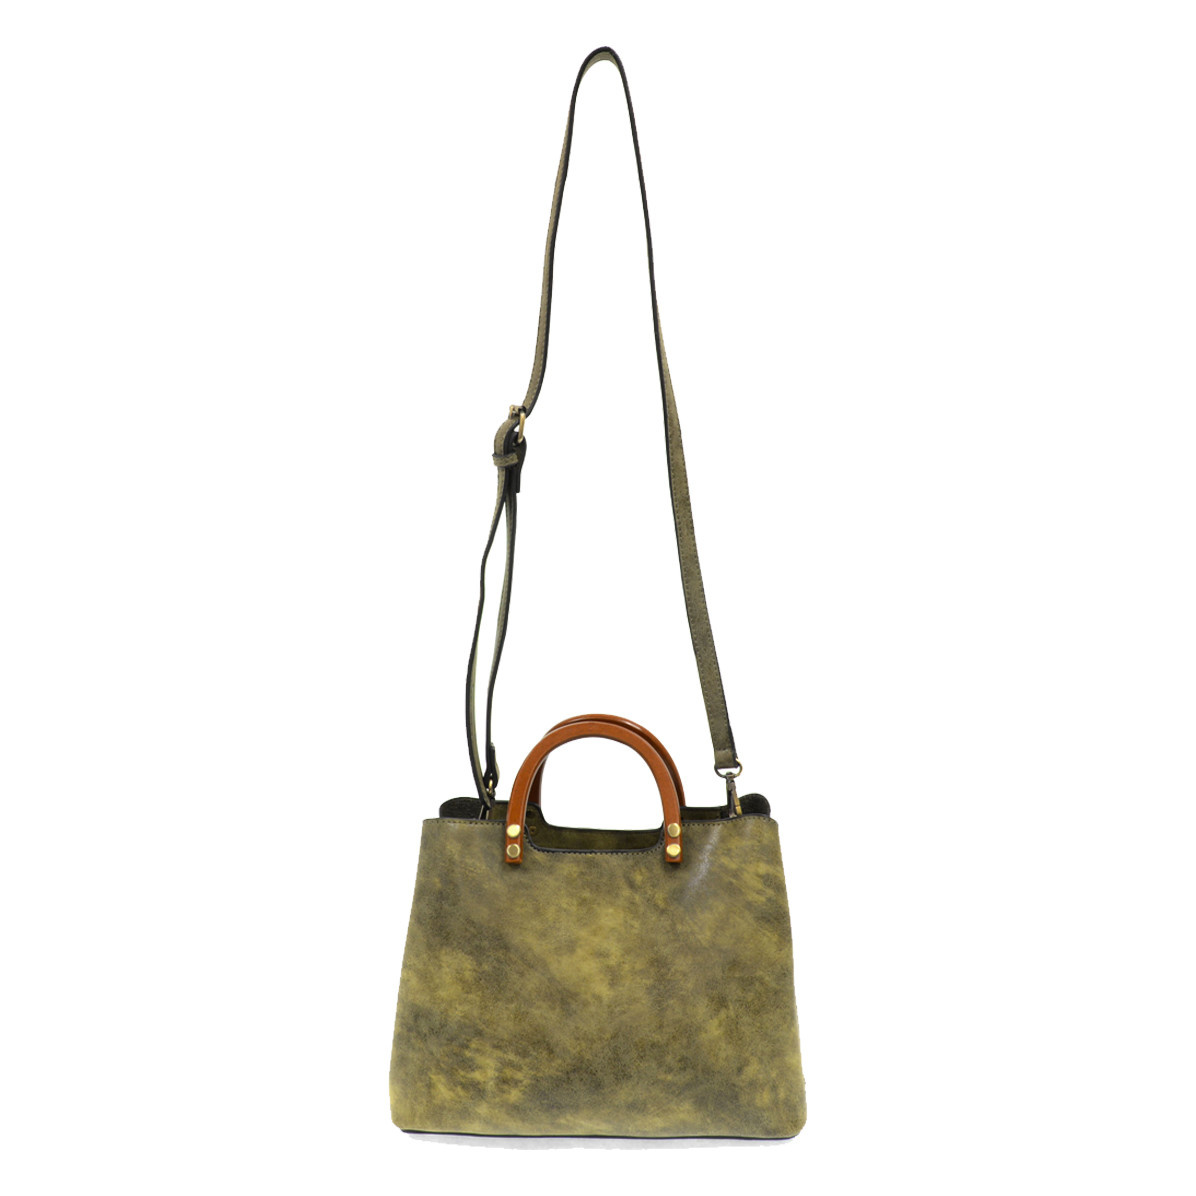 Joy Susan Joy Susan Angie Vintage Satchel with Wood Handle Olive